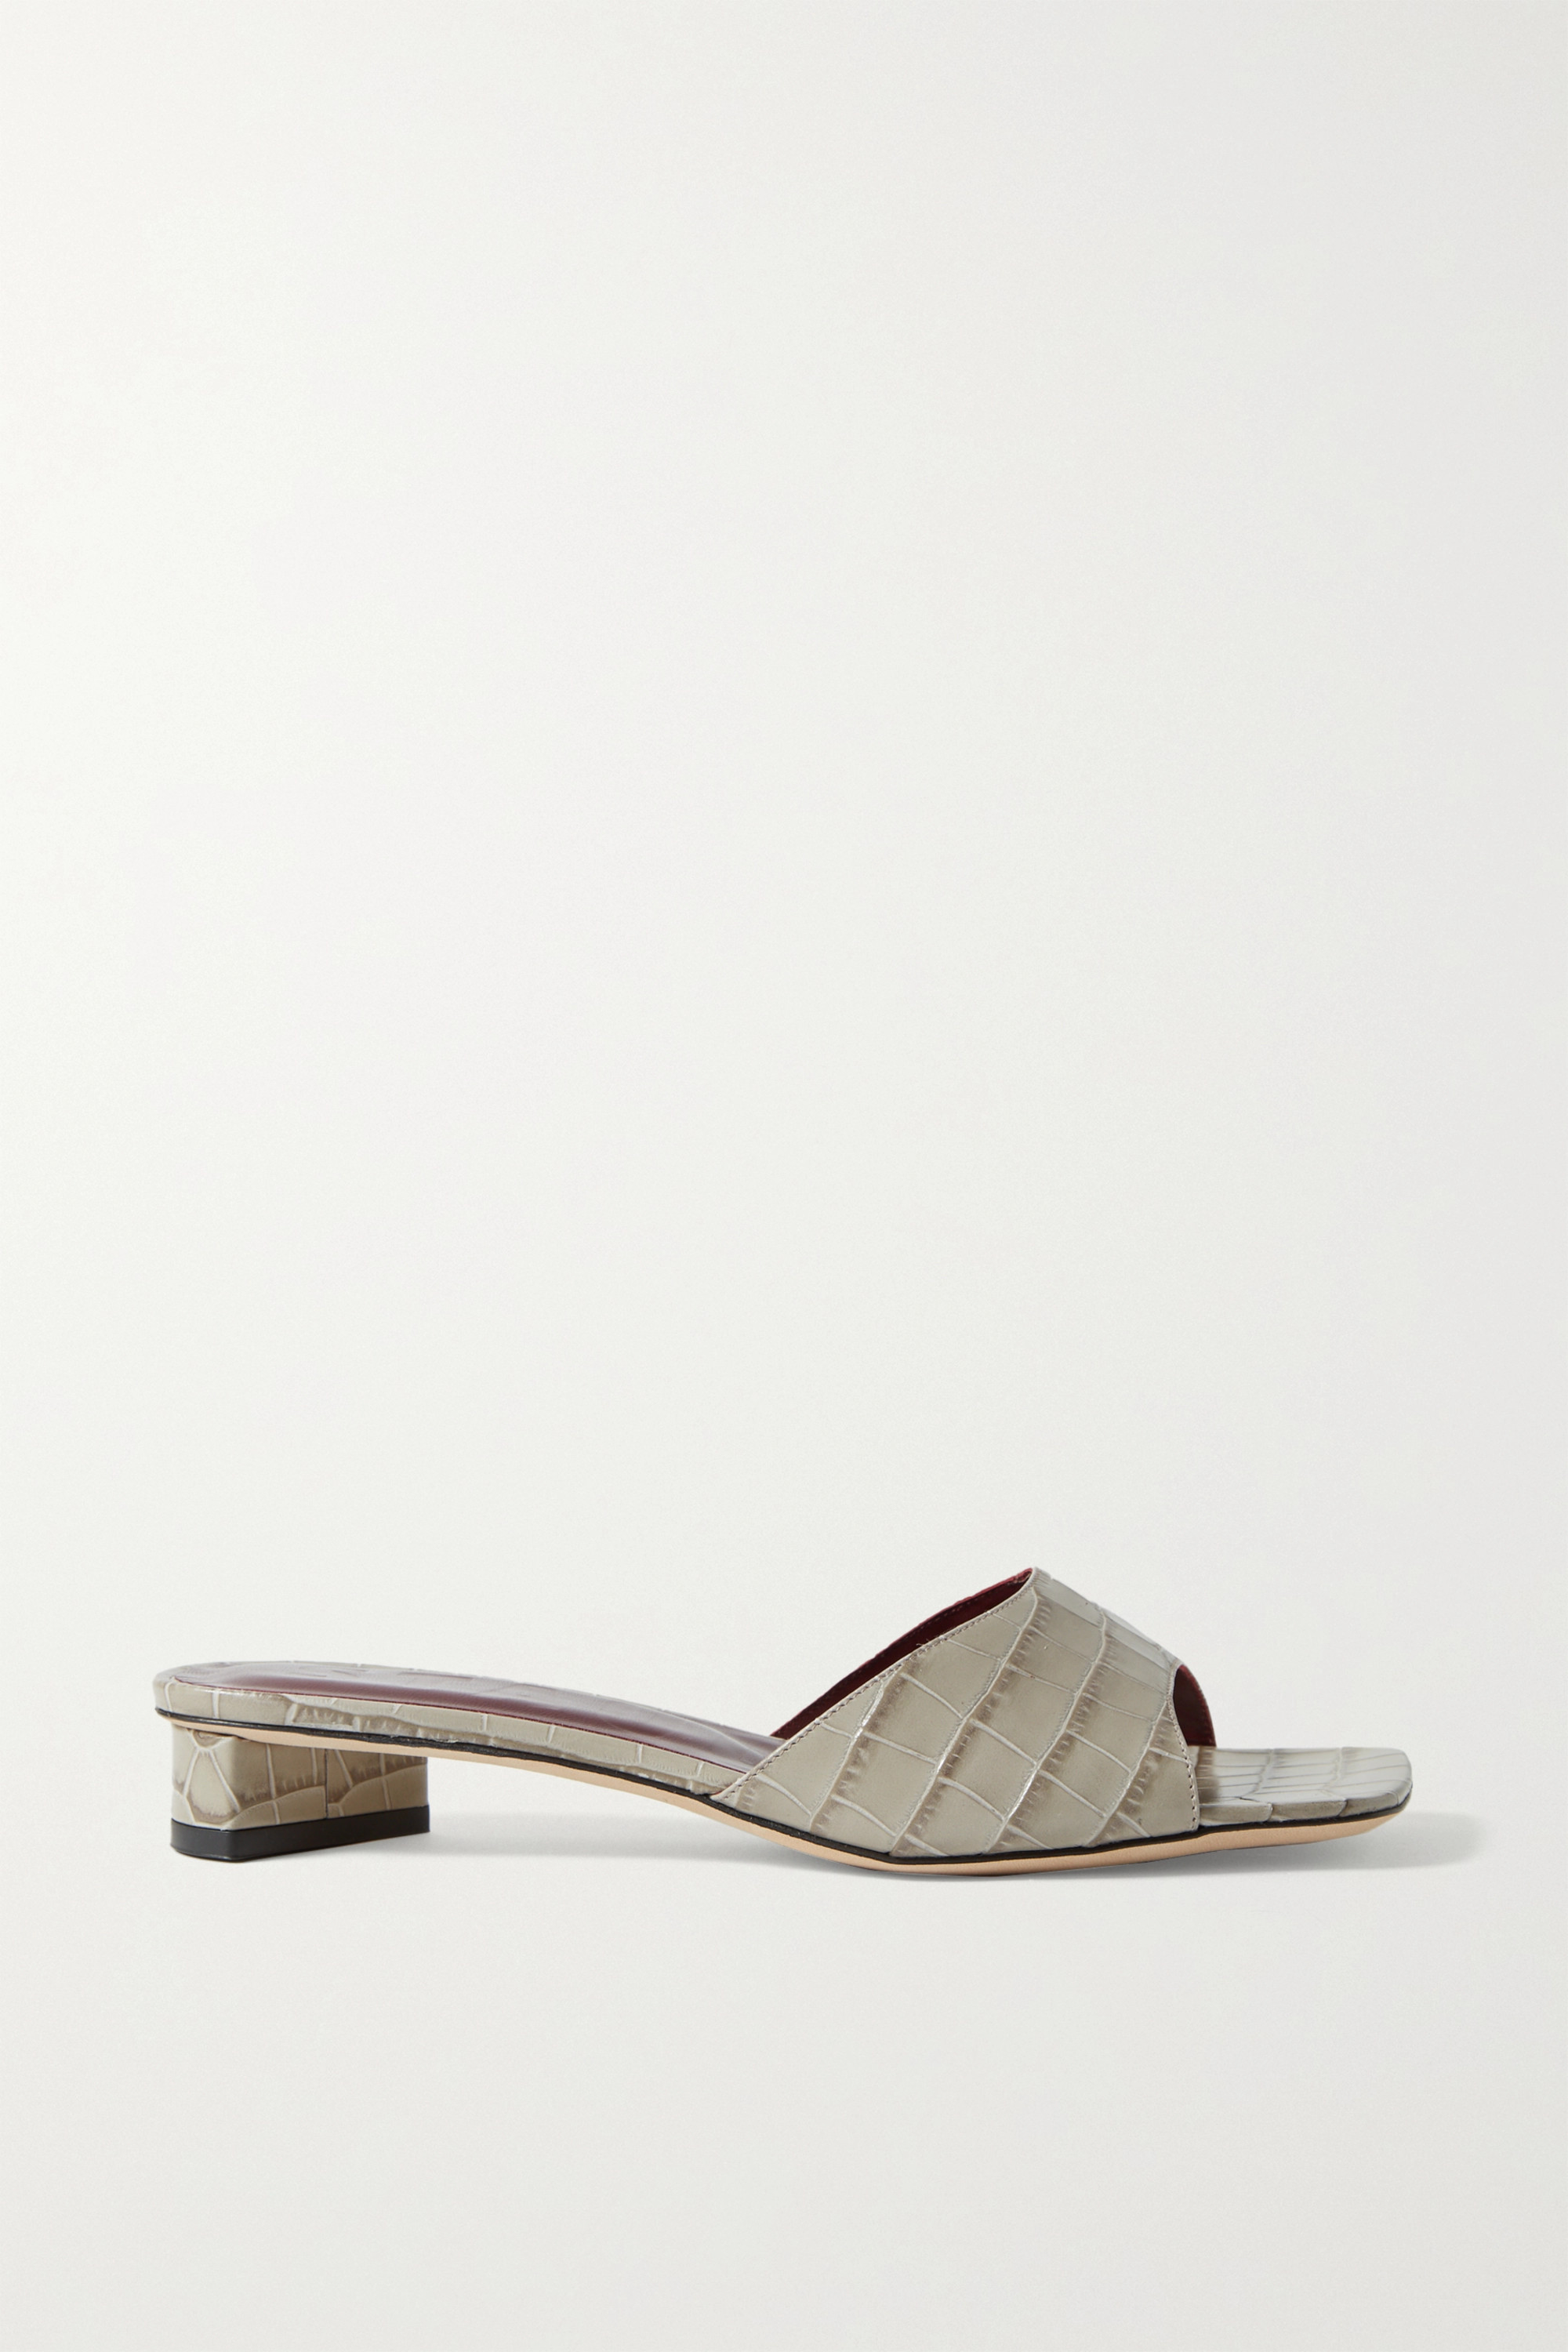 Staud Women's Simone Croc-embossed Leather Mules In Gray